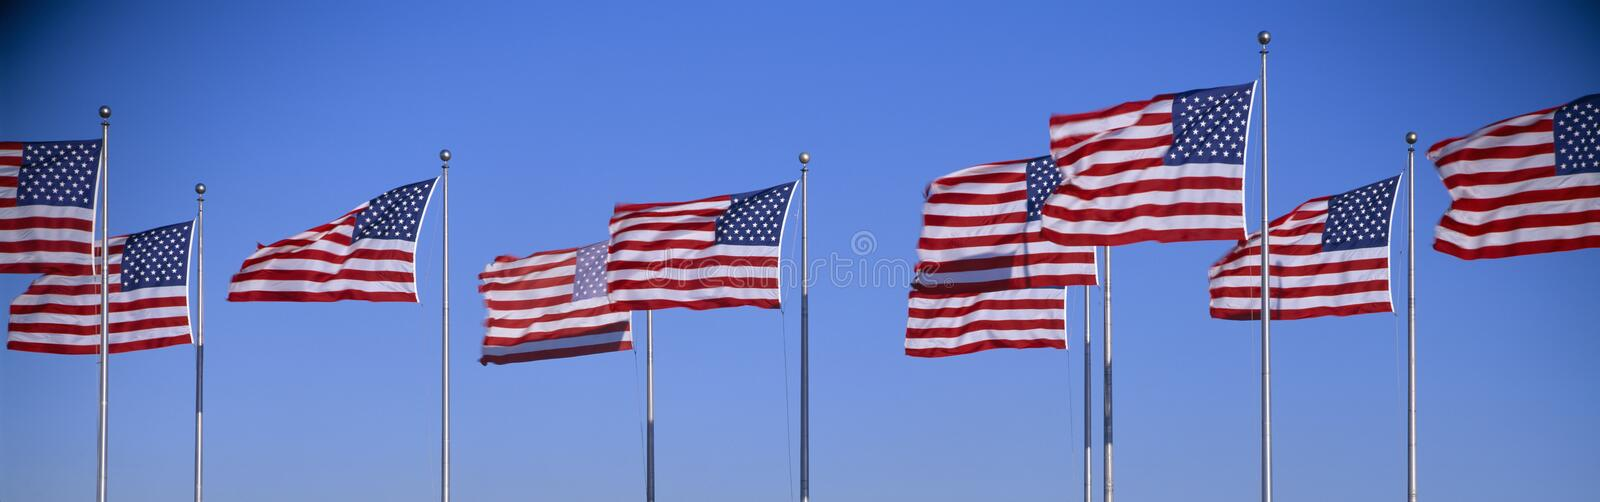 Group of American flags waving stock photos